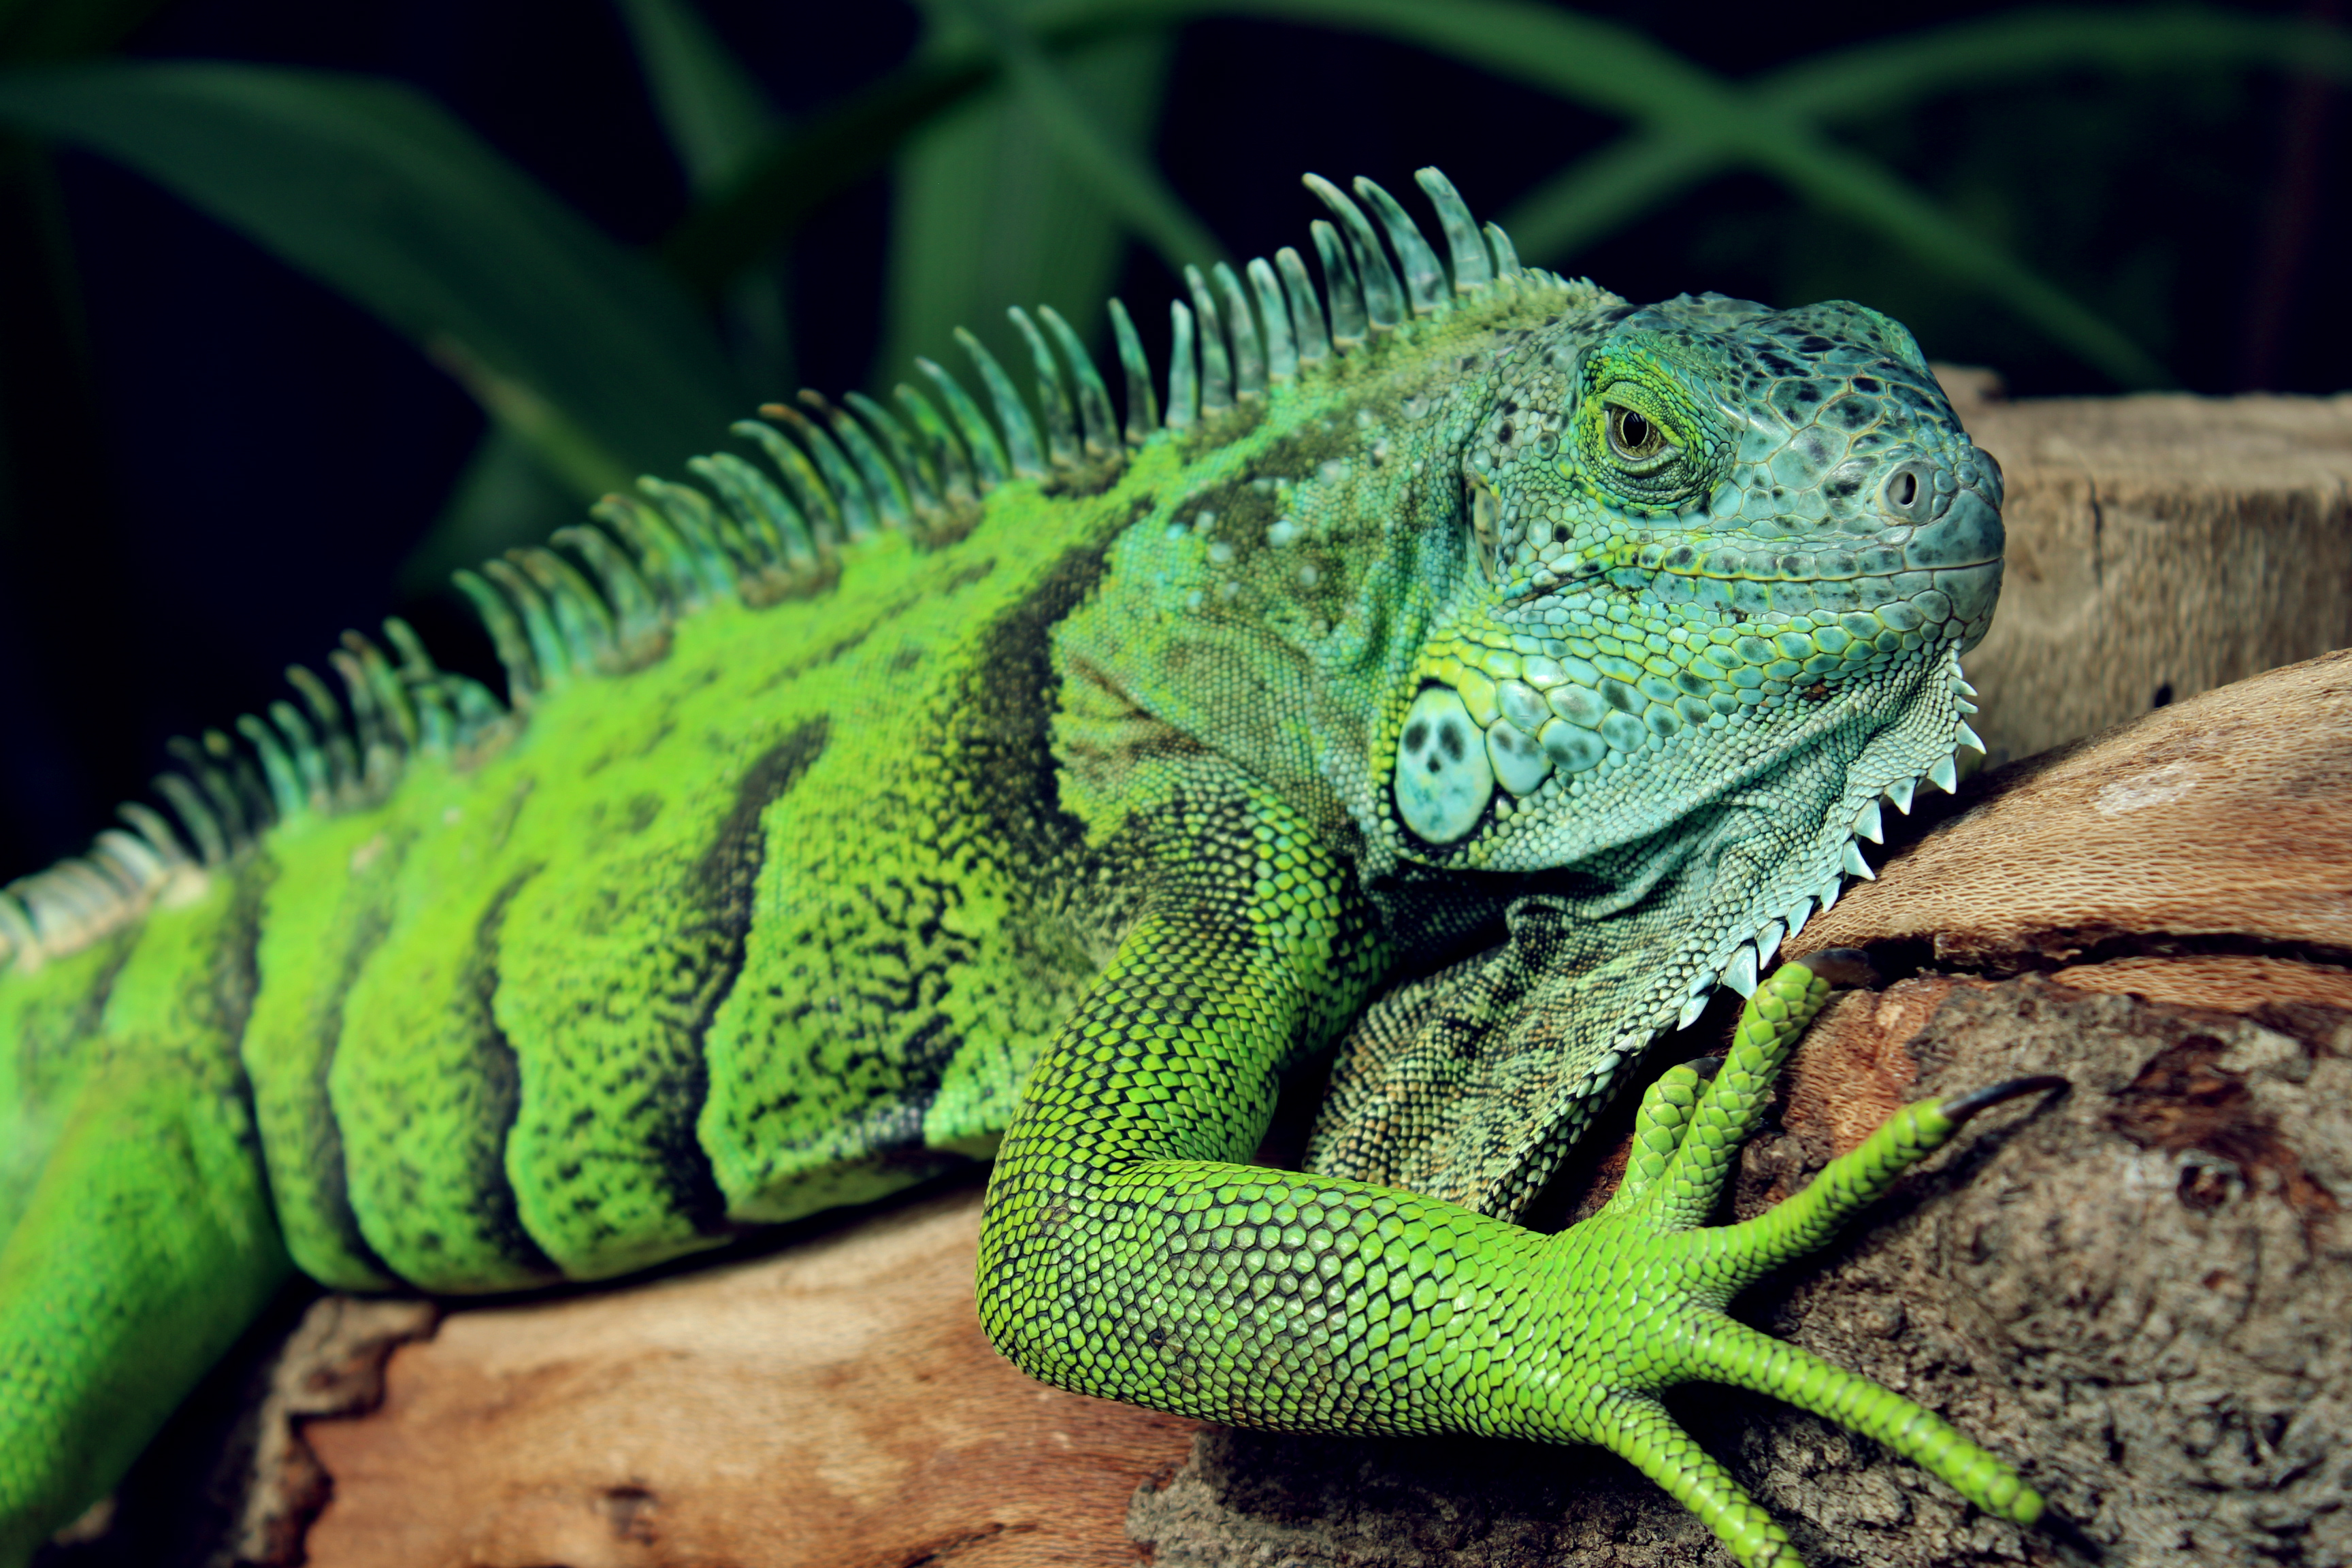 Lizard Squad hackers face cybercrime charges in Chicago - Cyberscoop